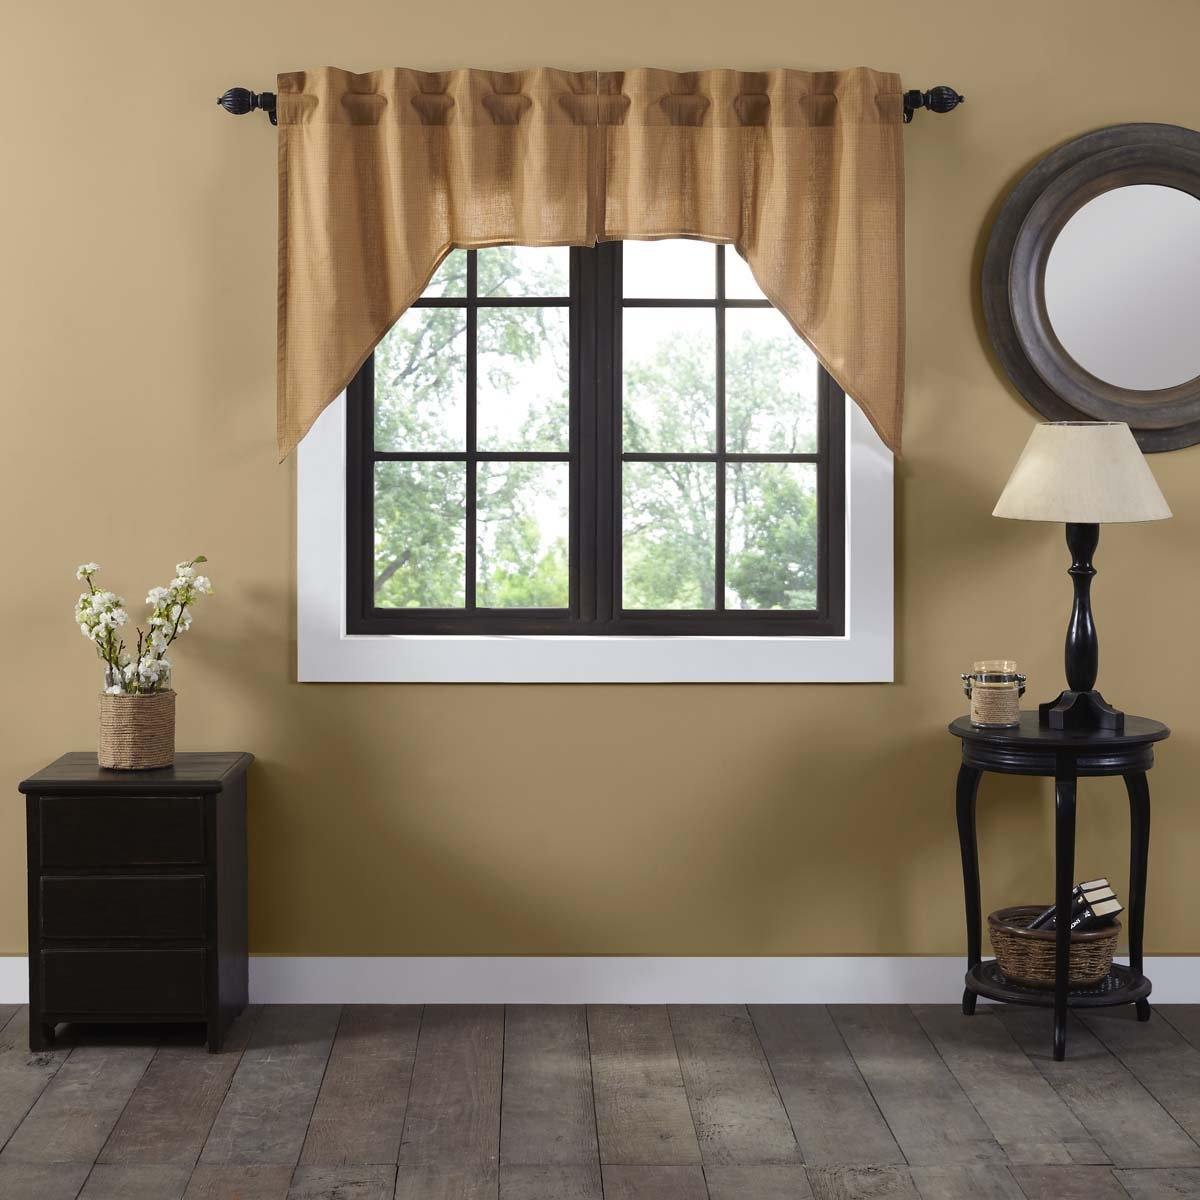 VHC Brands Classic Country Primitive Kitchen Window Curtains-Kindred Star Tan Lined Plaid Swag Pair 39483